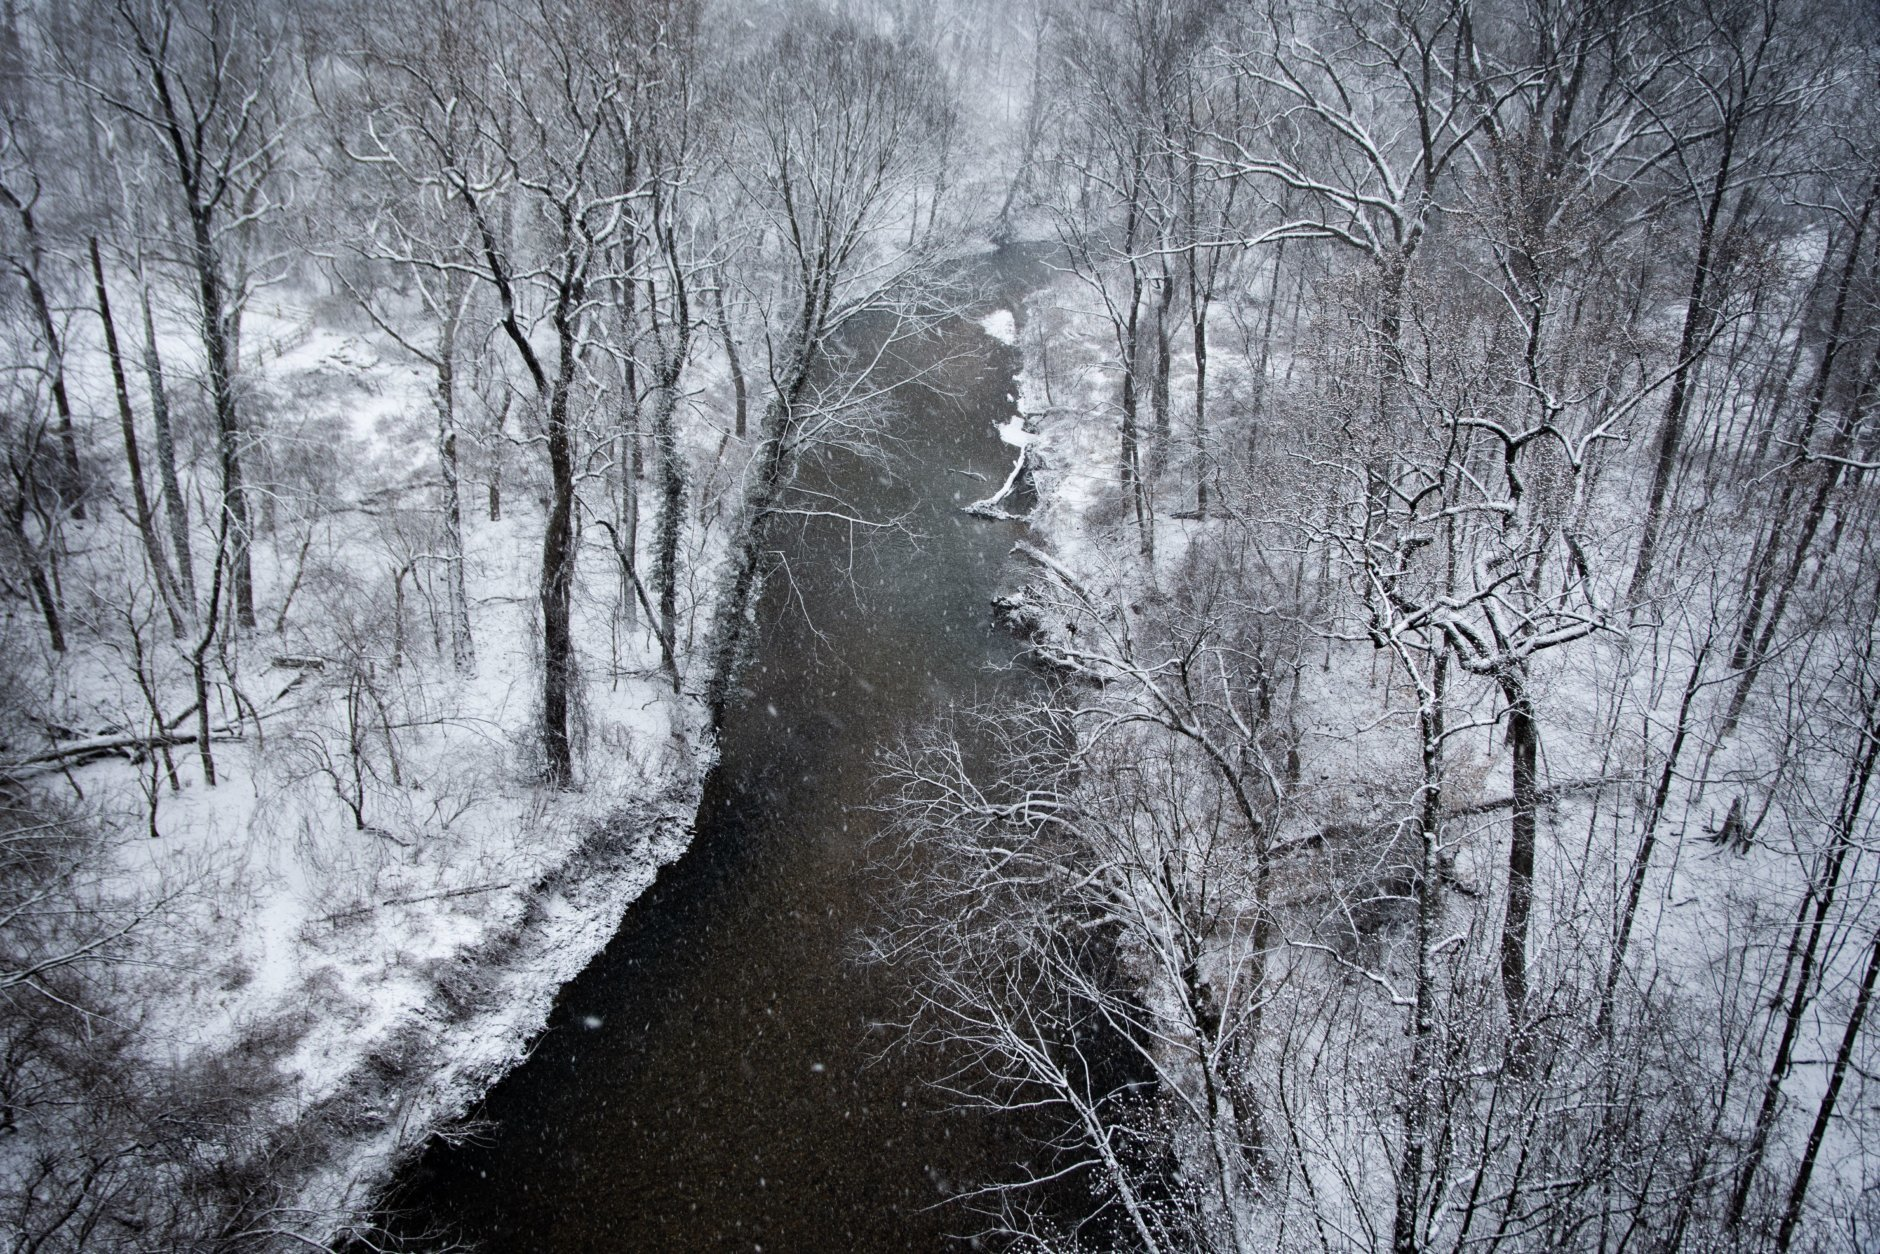 Rock Creek, looking southwest from the Connecticut Avenue overpass just after daybreak on Wednesday morning. (WTOP/Alejandro Alvarez)